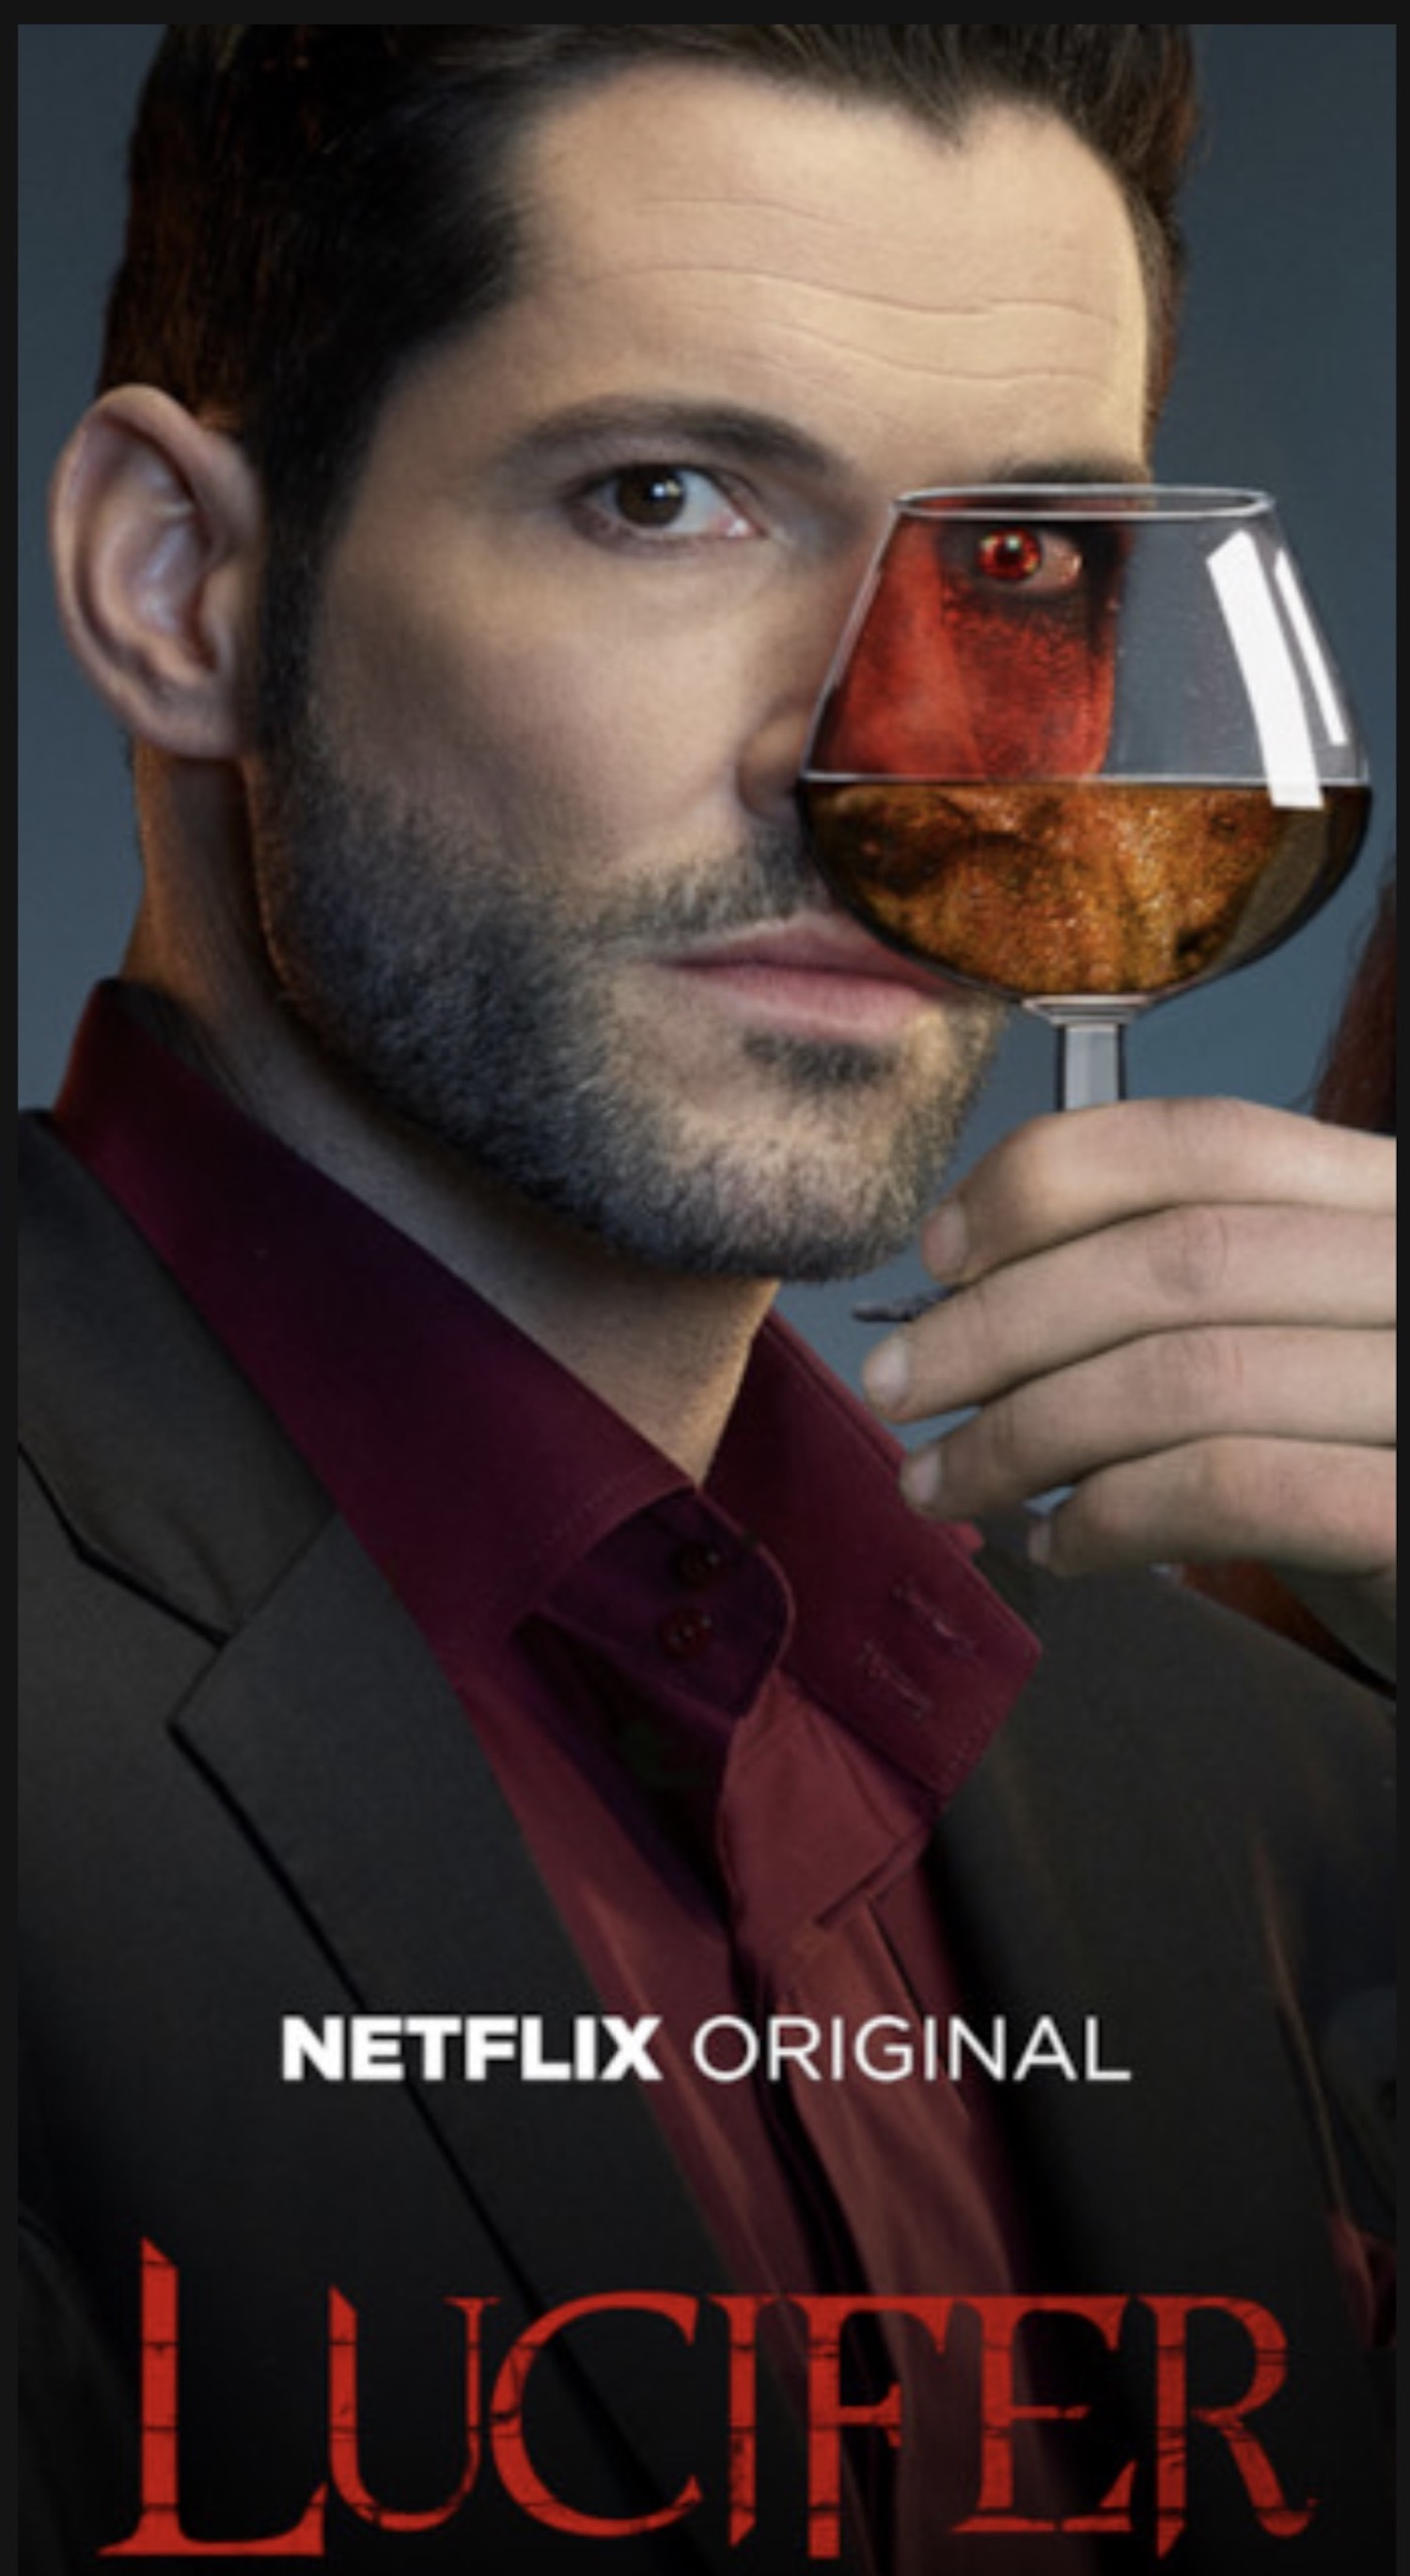 It's here! Devilish wines to drink while watching Lucifer on Netflix!!